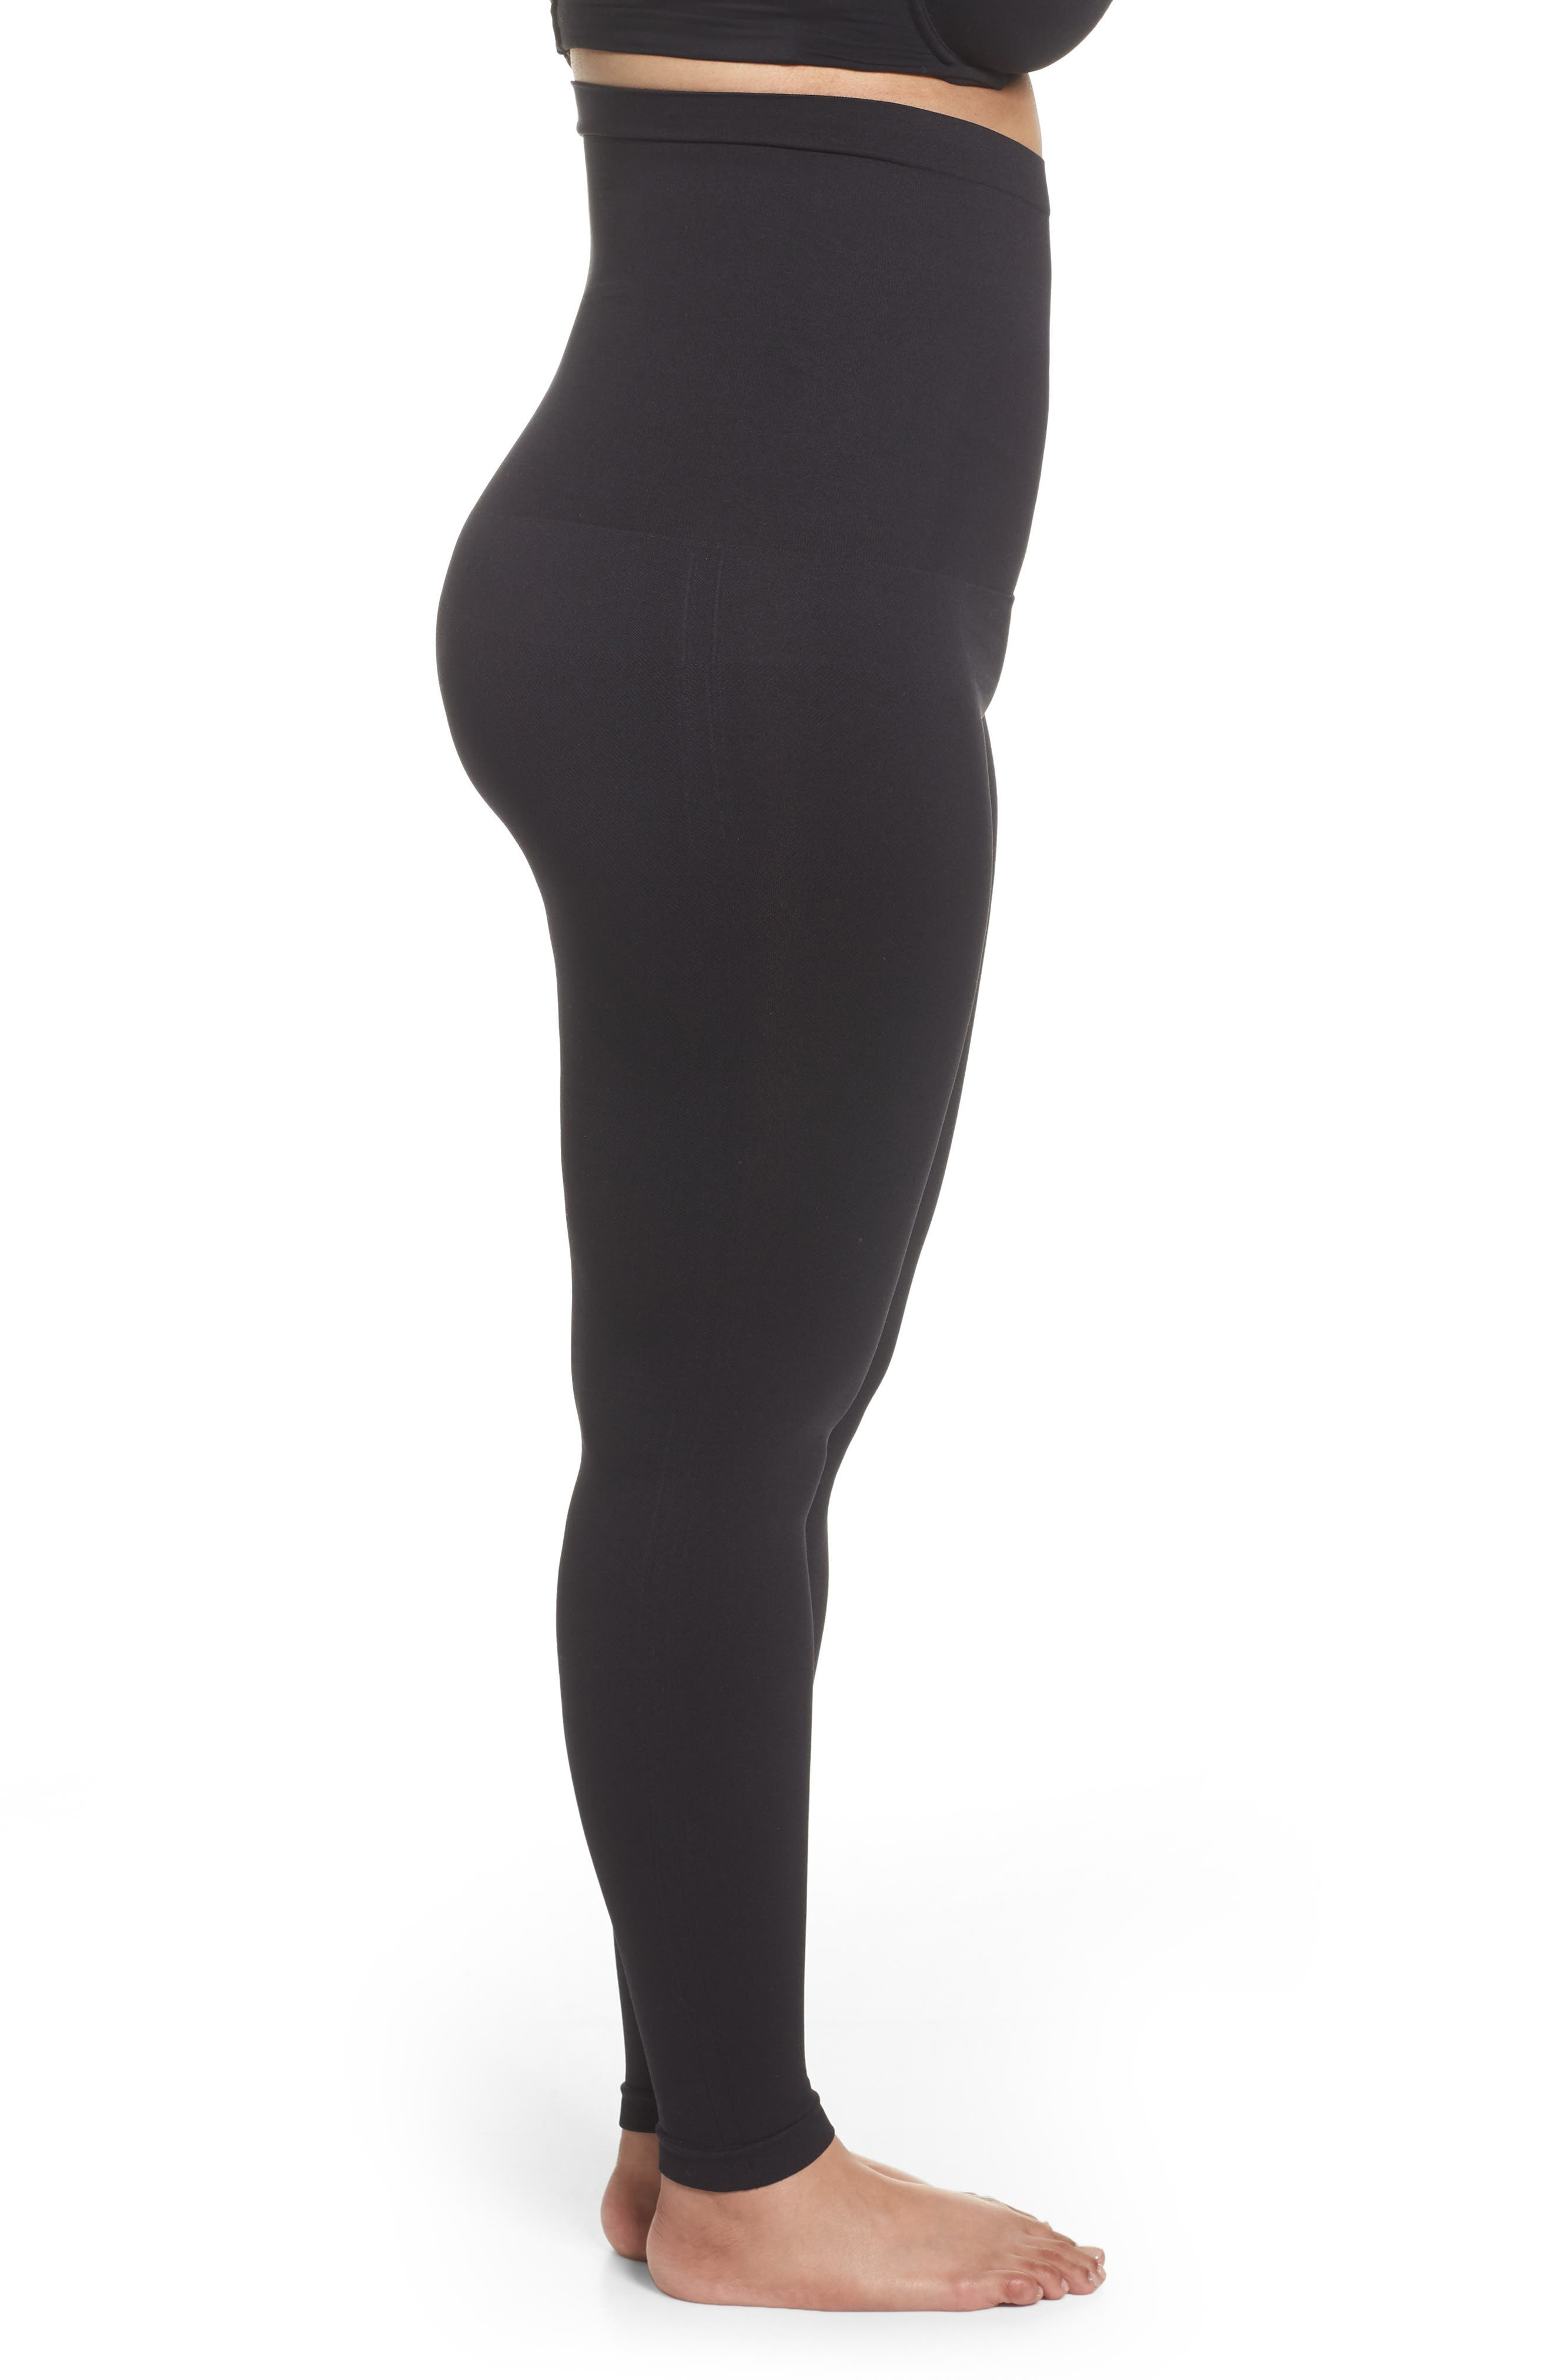 Look At Me Now Seamless Leggings,                             Alternate thumbnail 3, color,                             VERY BLACK